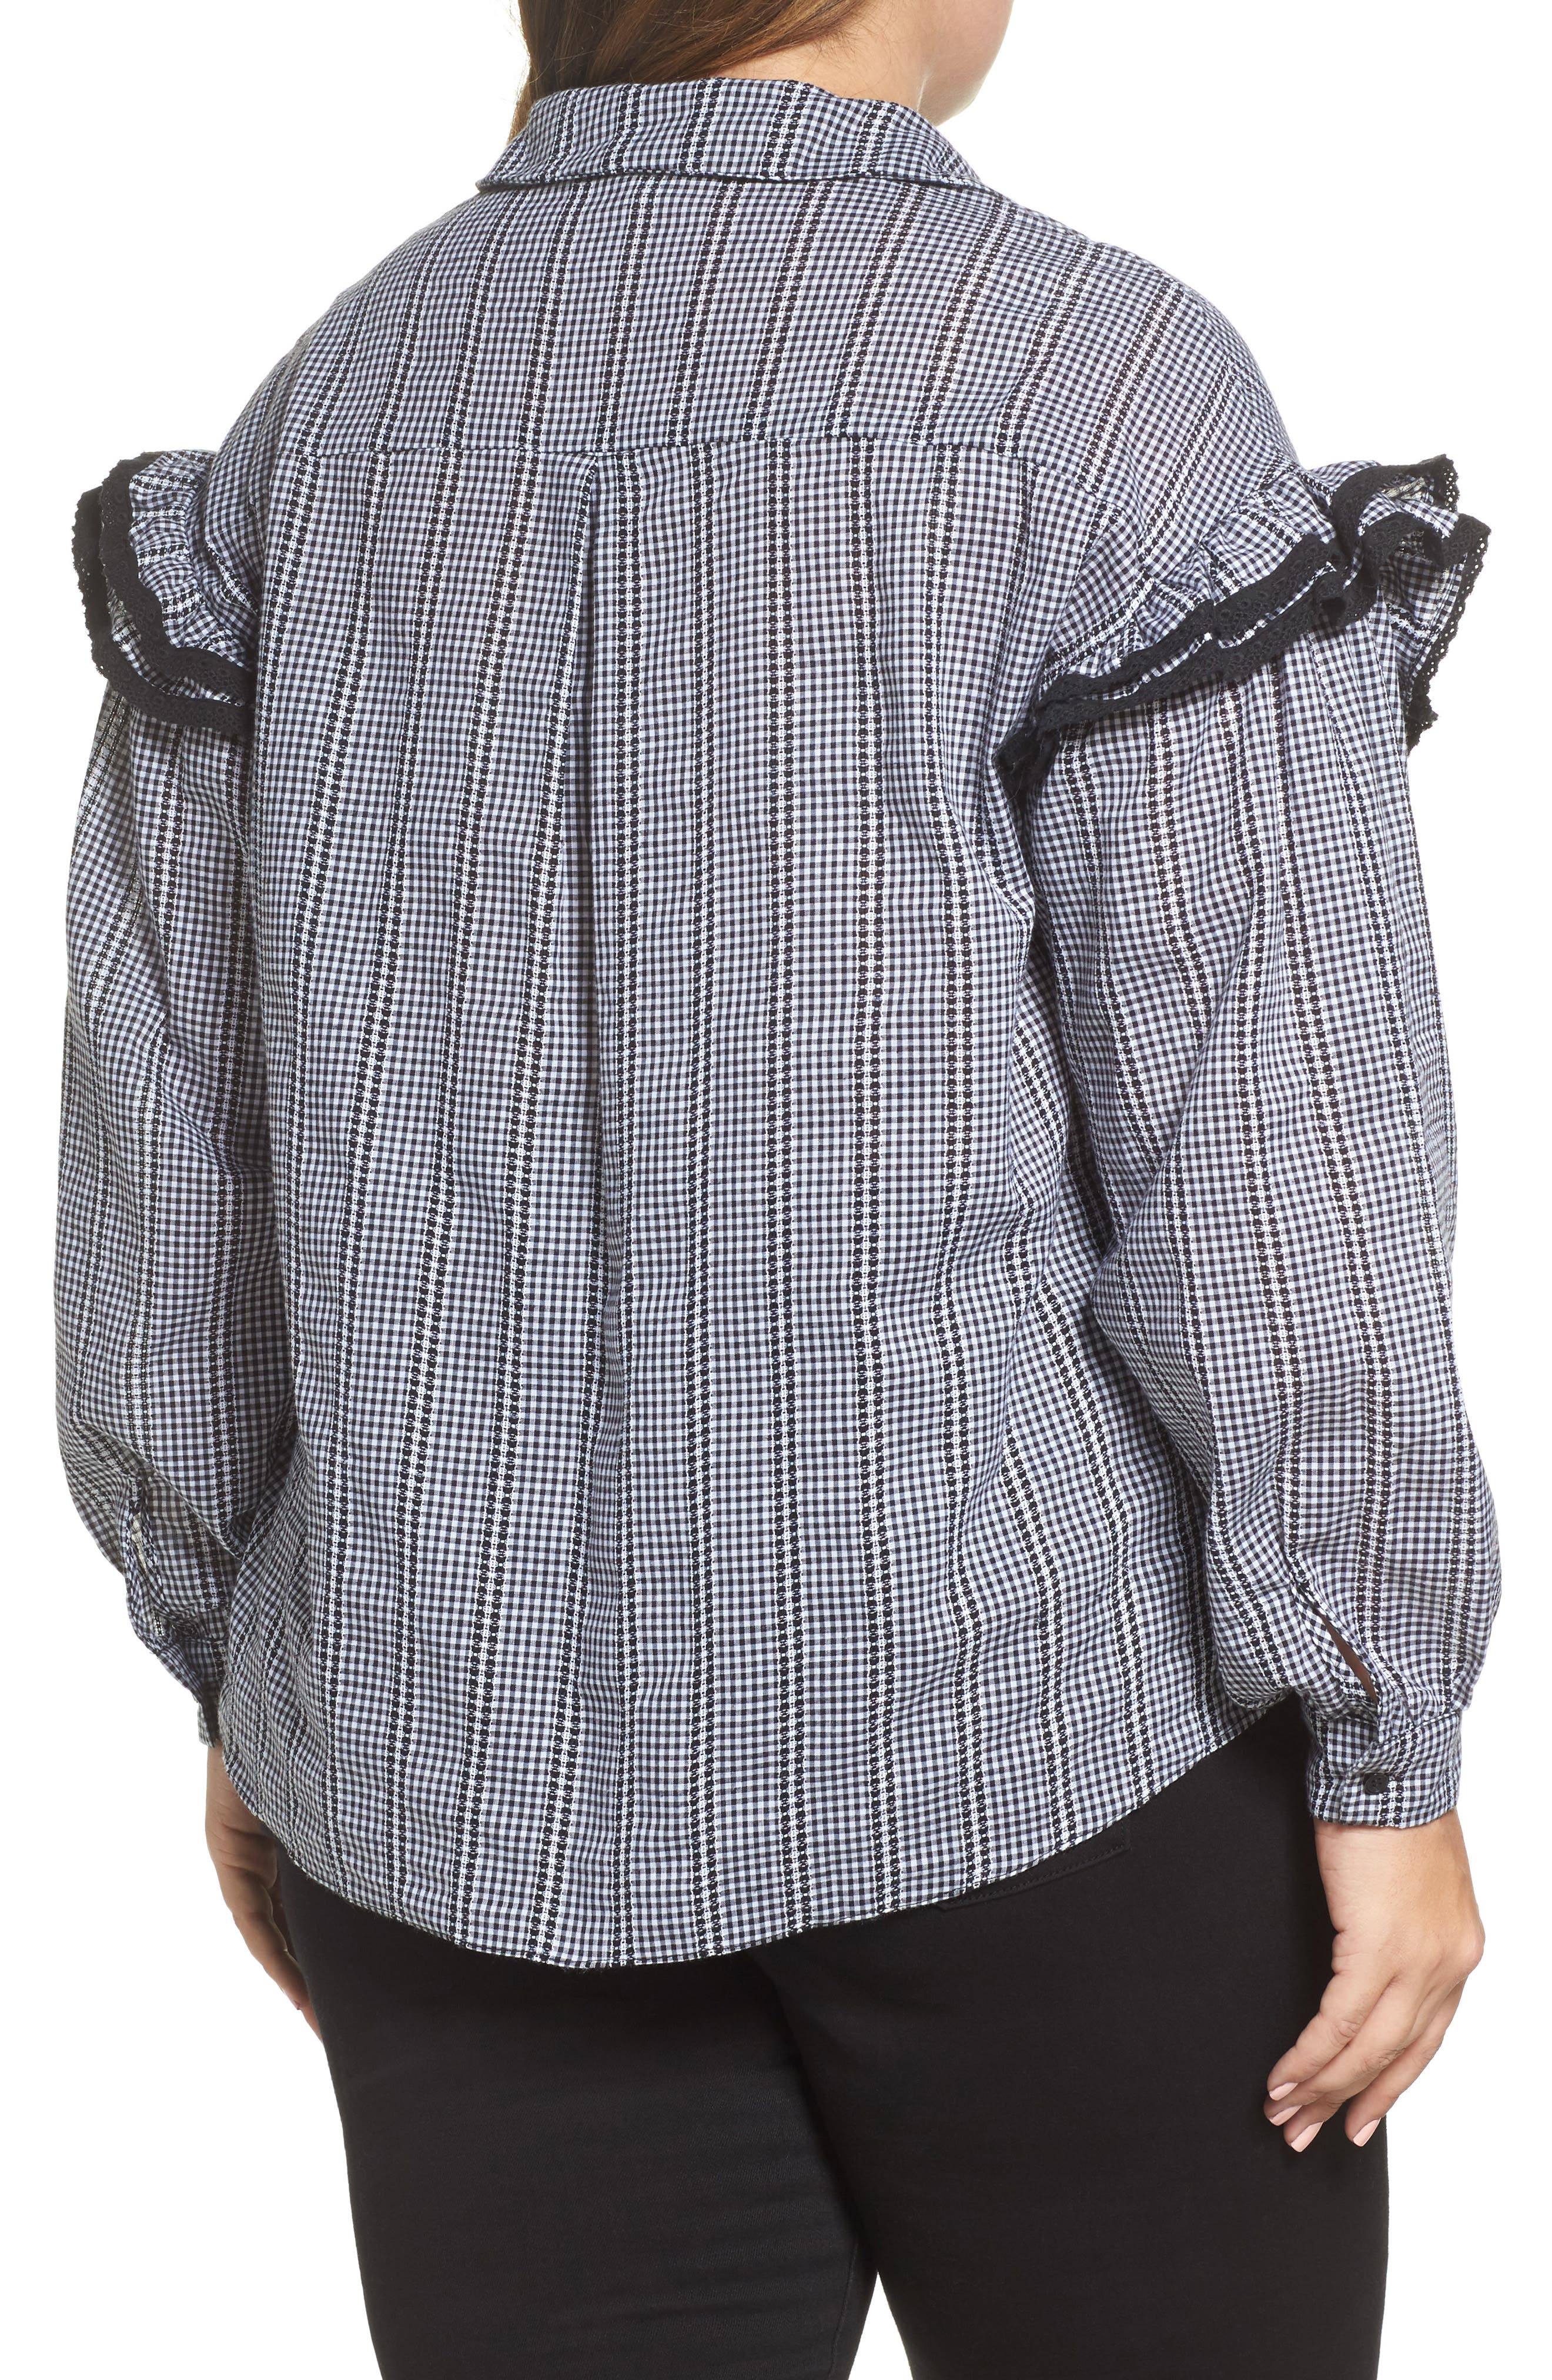 Gingham Ruffle Sleeve Shirt,                             Alternate thumbnail 3, color,                             Multi